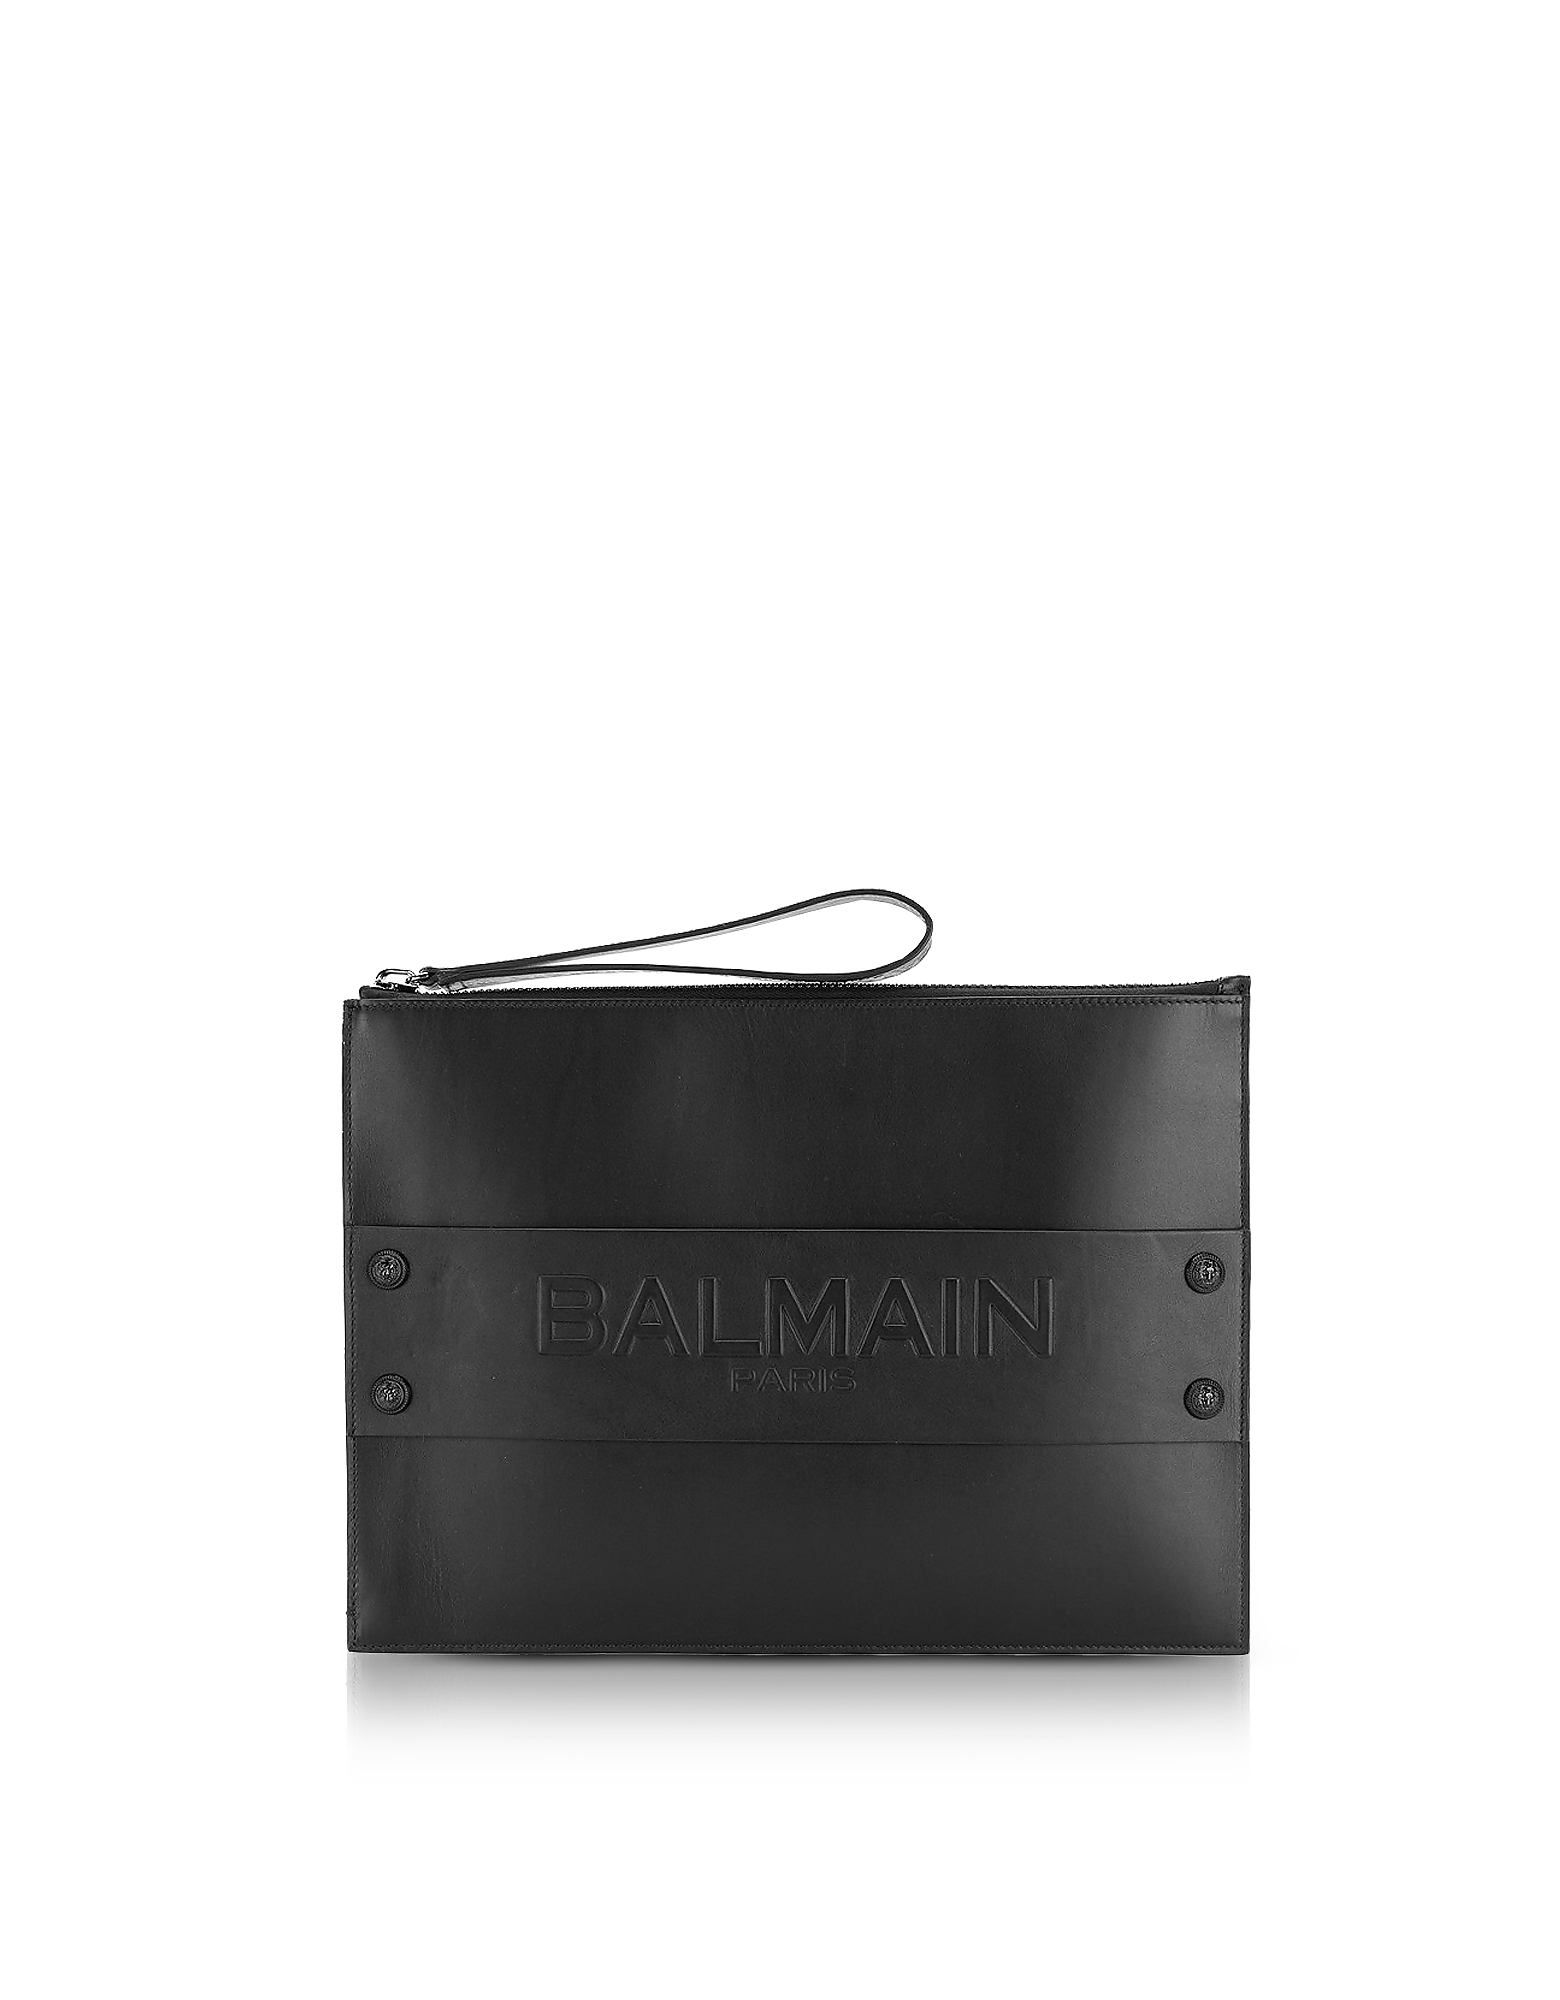 Balmain Men's Bags, Black Shiny Leather Mini Men's Pouch w/Embossed Logo